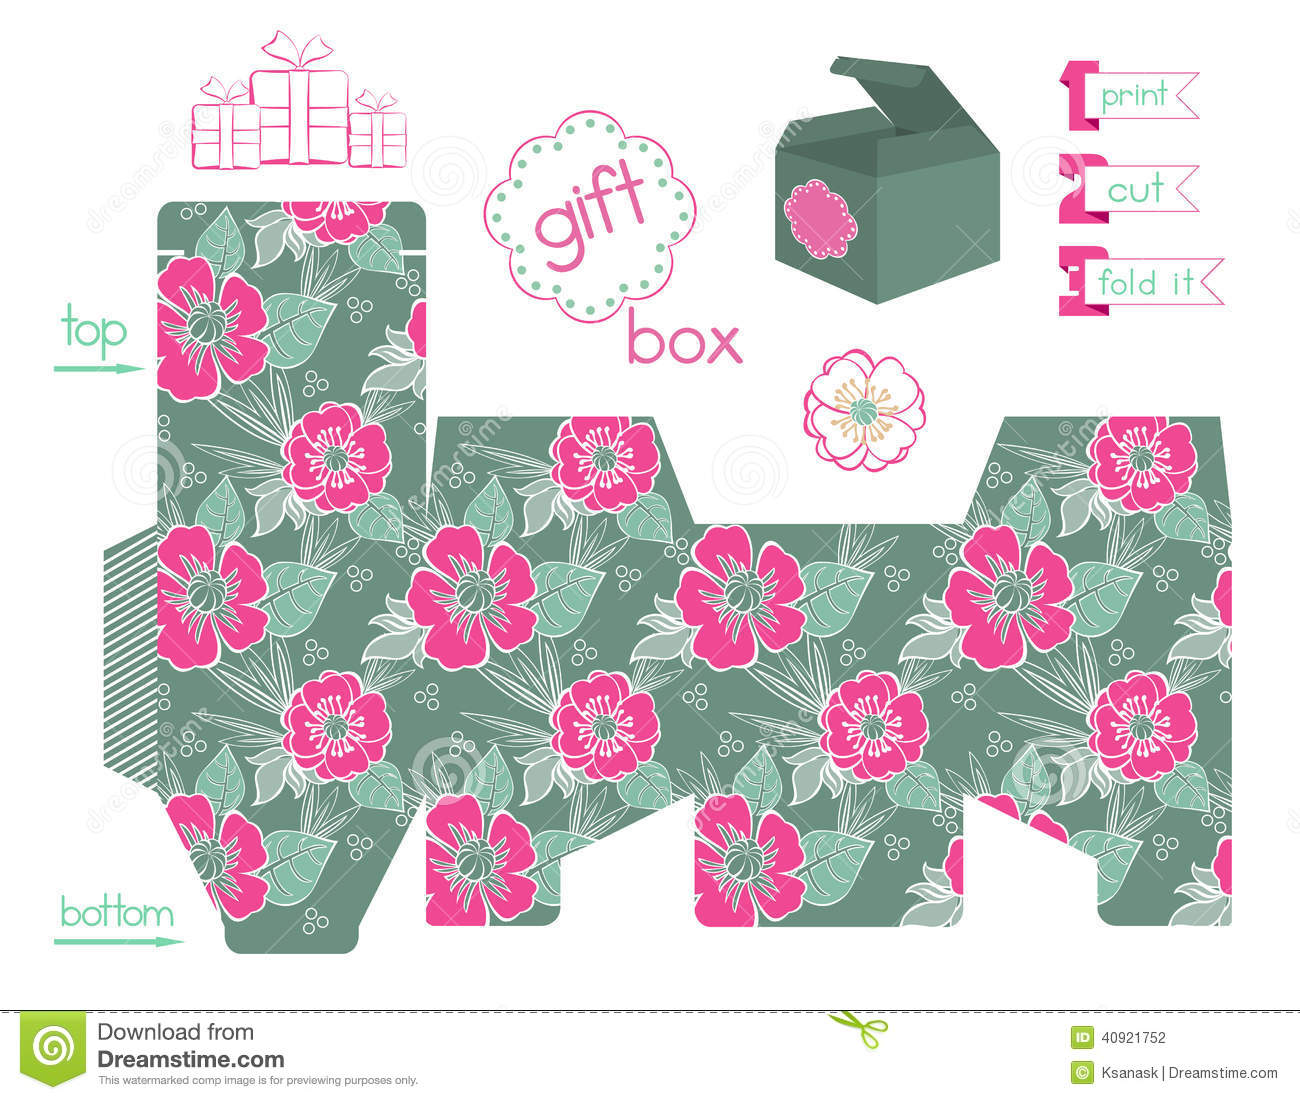 Printable Gift Box With Poppies Pattern Stock Vector - Image: 40921752